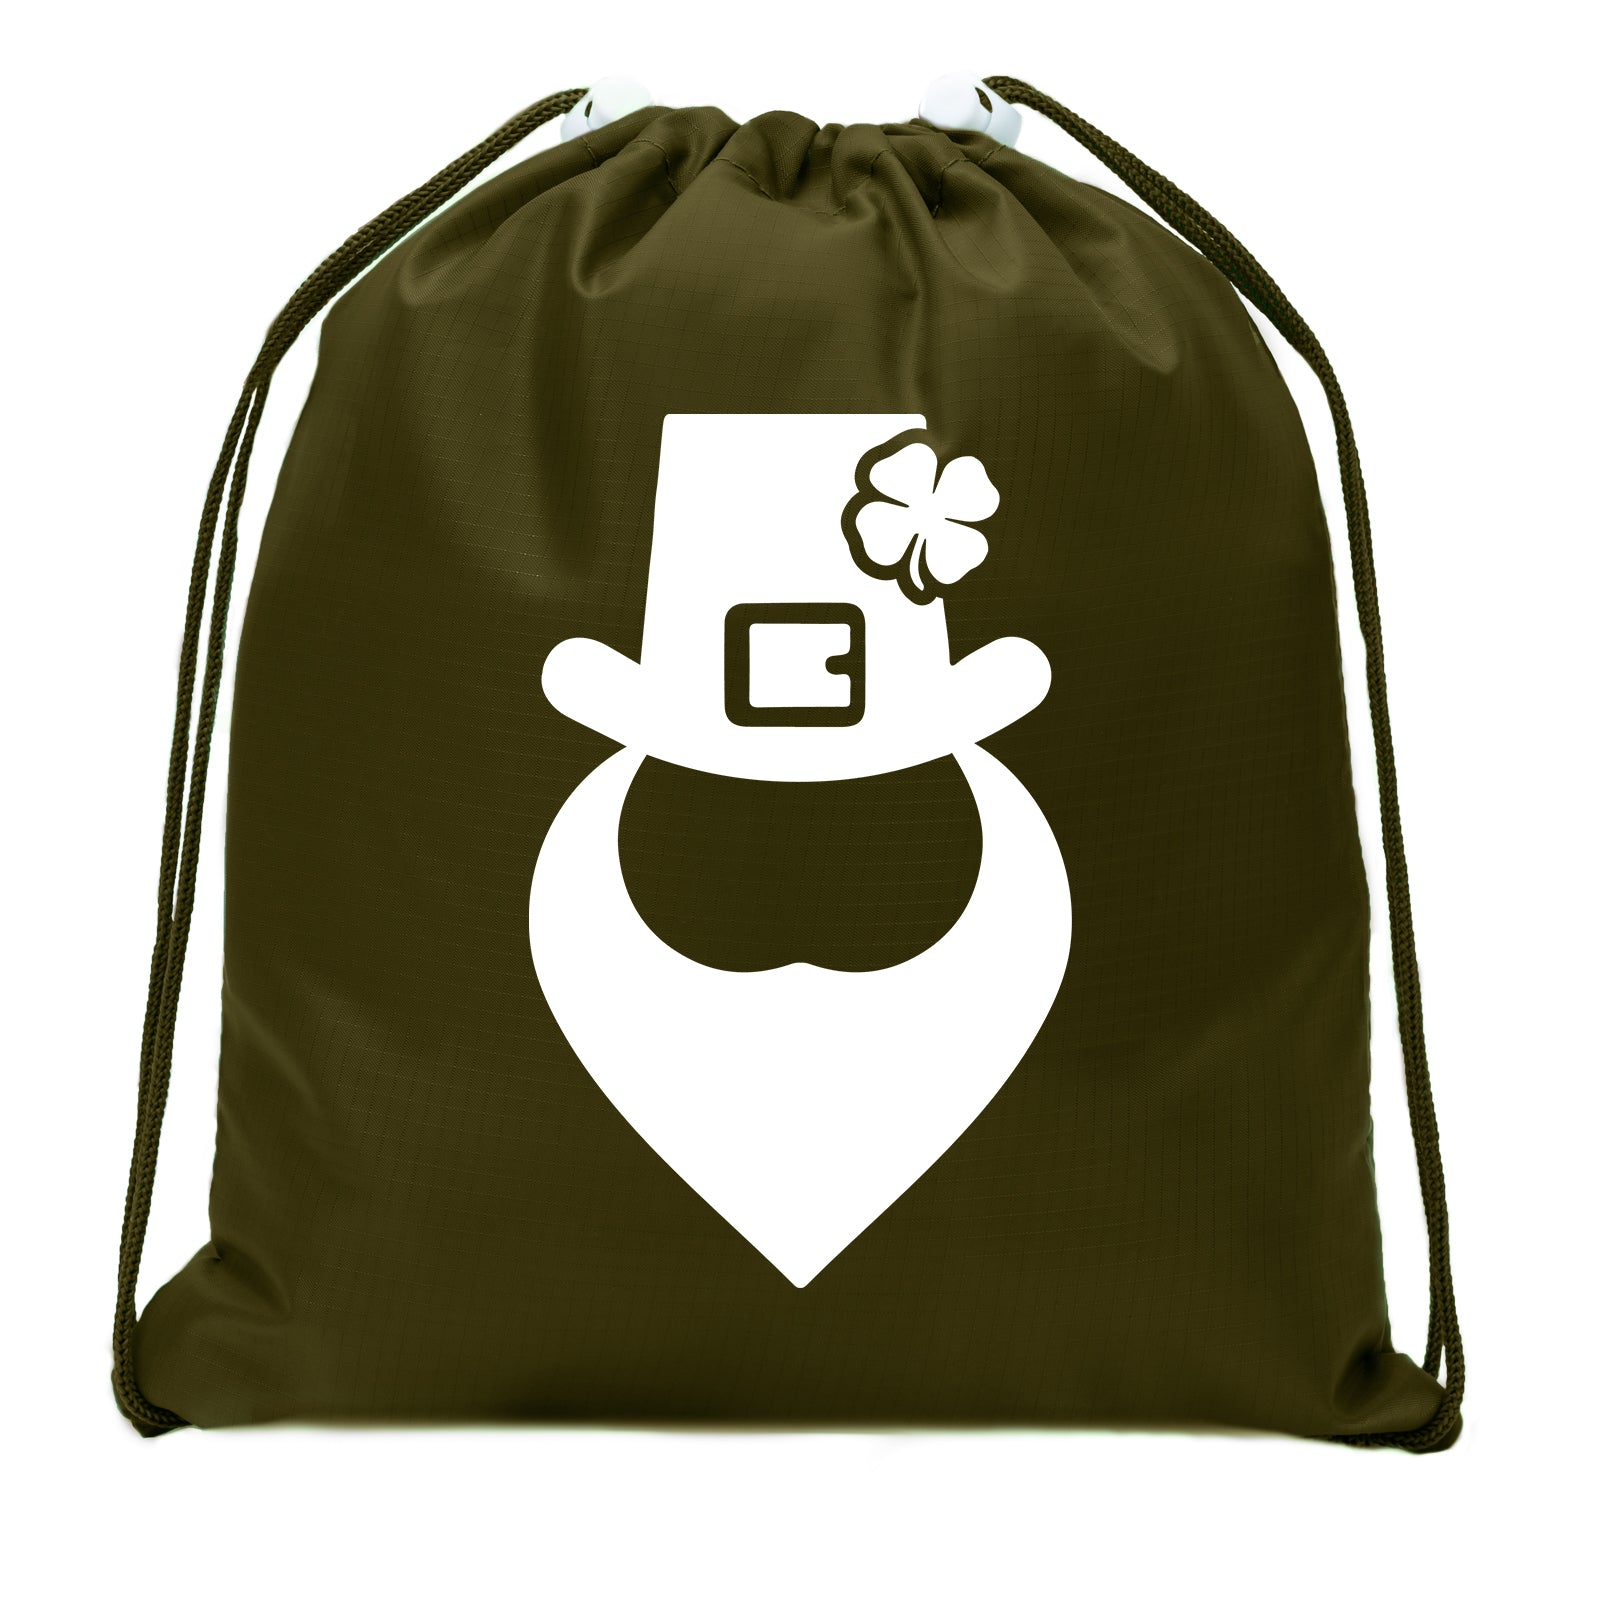 Accessory - St Patrick's Day Goodie Bags, Mini Drawstring Cinch Sacks, Small Gift Bags - Leprechaun